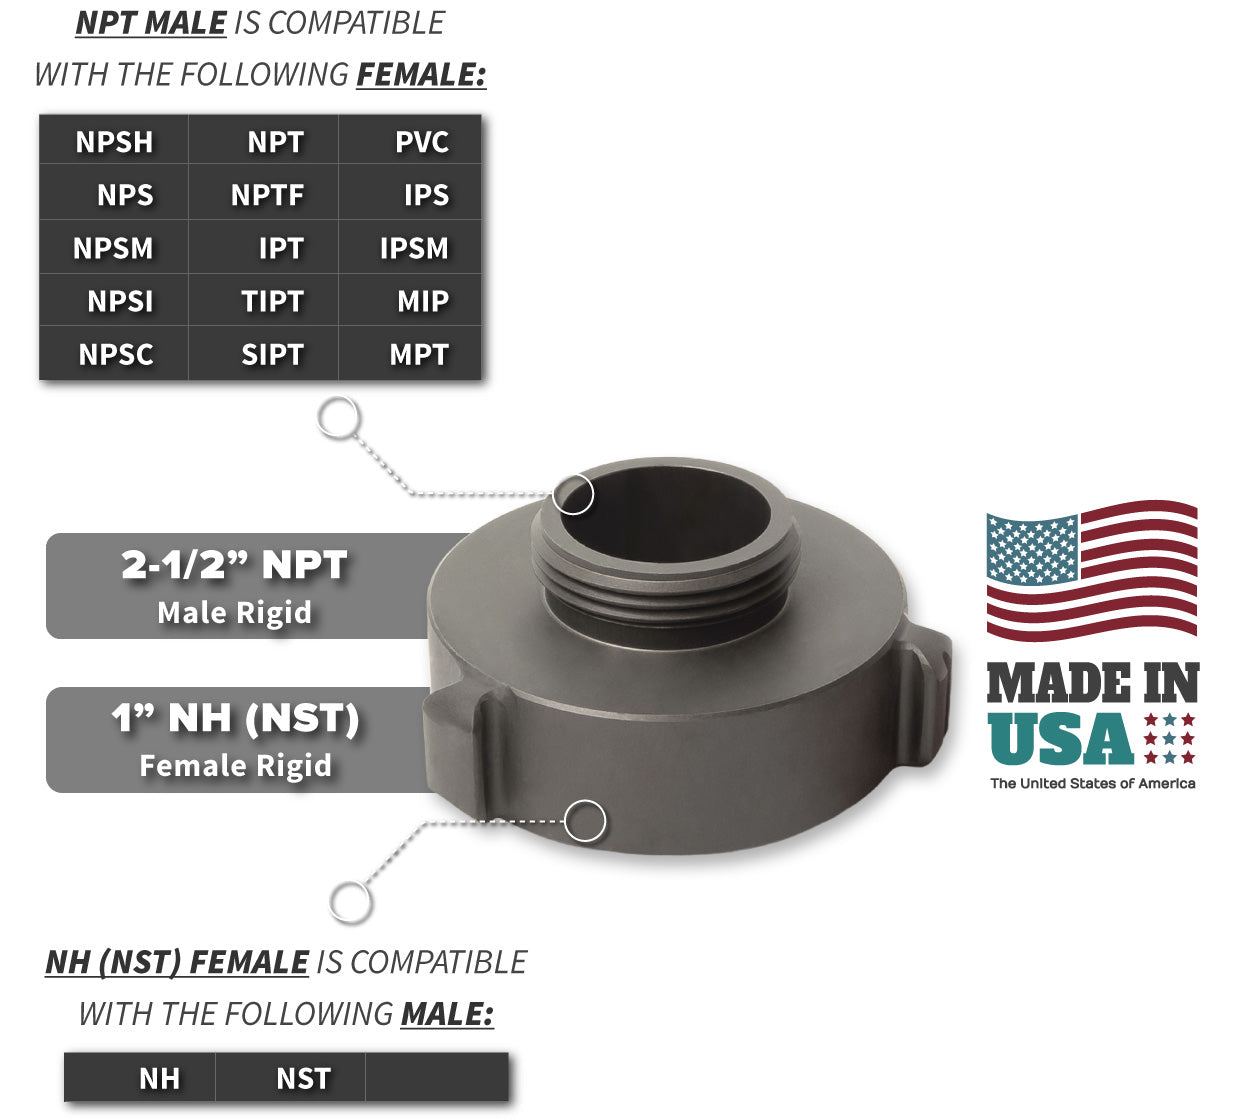 1 Inch NH-NST Female x 2.5 Inch NPT Male Compatibility Thread Chart